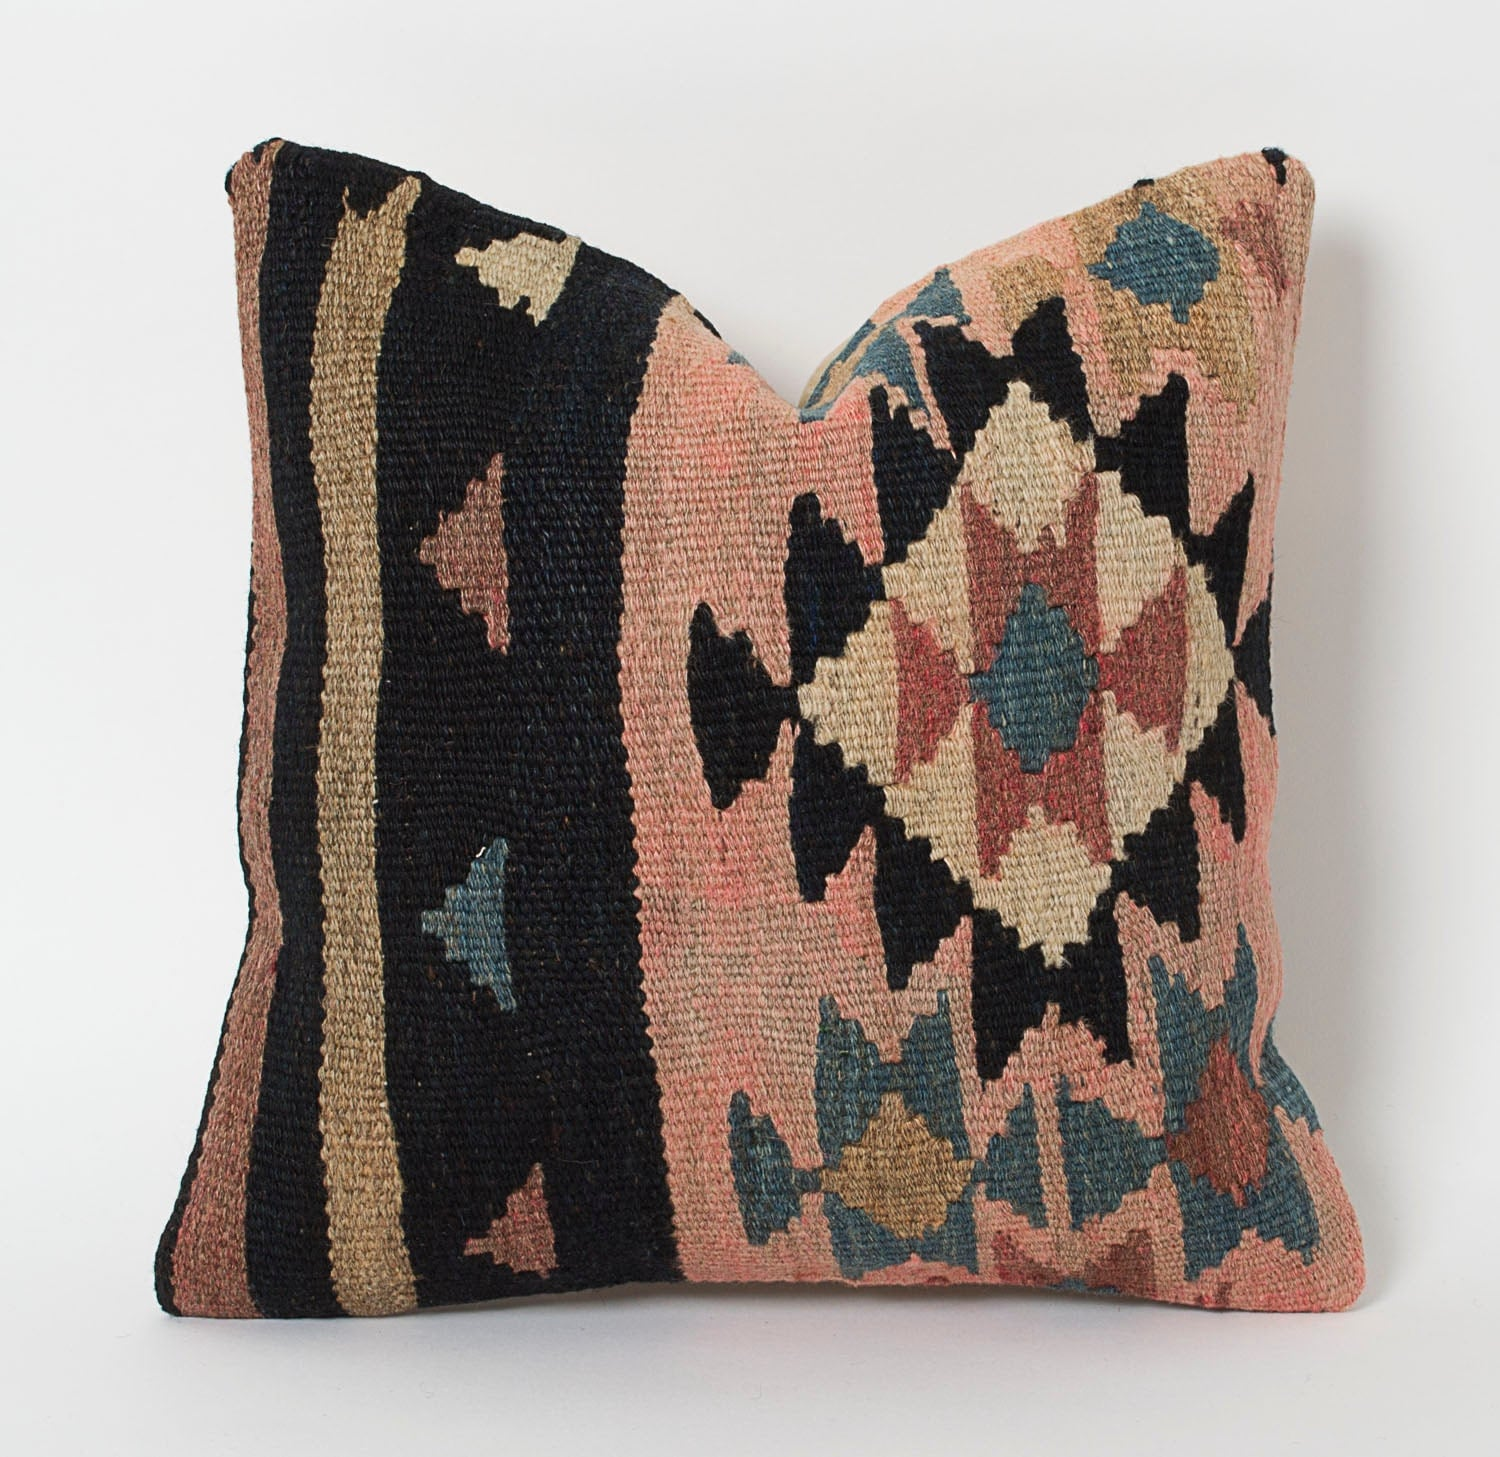 Kilim Pillows Etsy Decorative Kilim Pillows Handwoven By